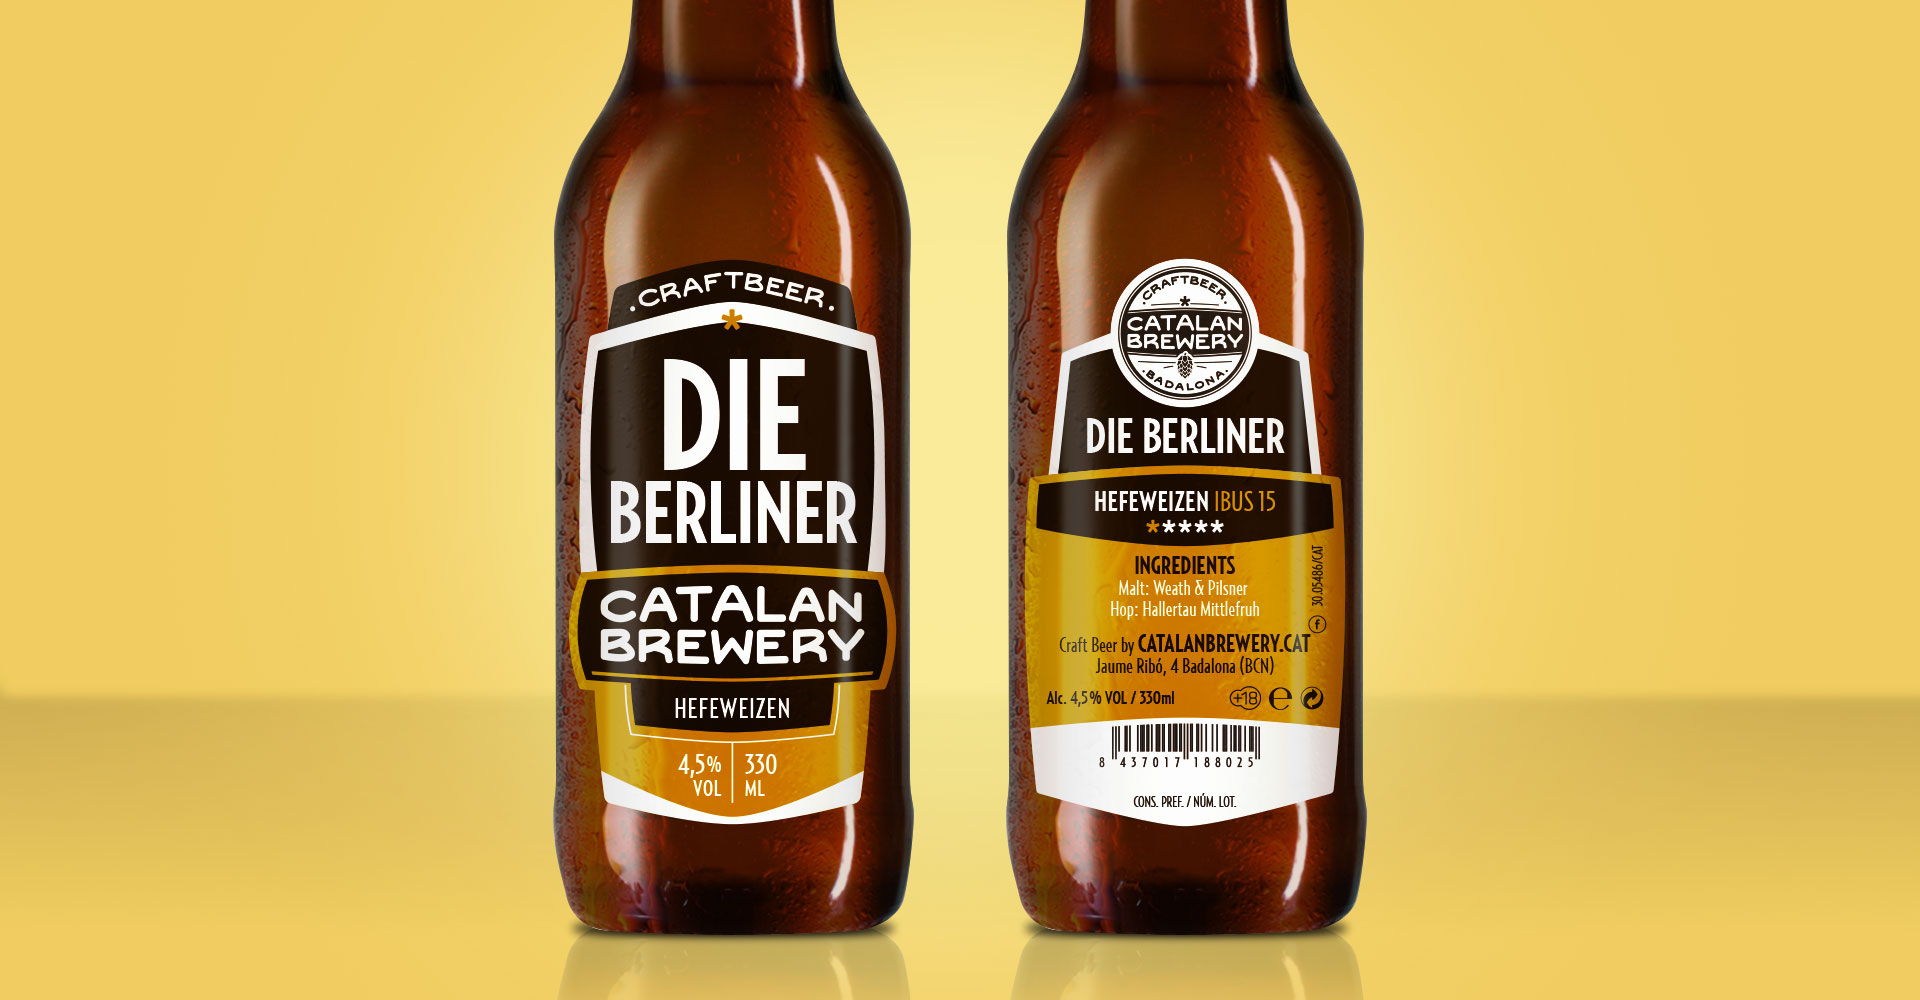 catalan brewery_craft beer_die berliner_onetree.jpg